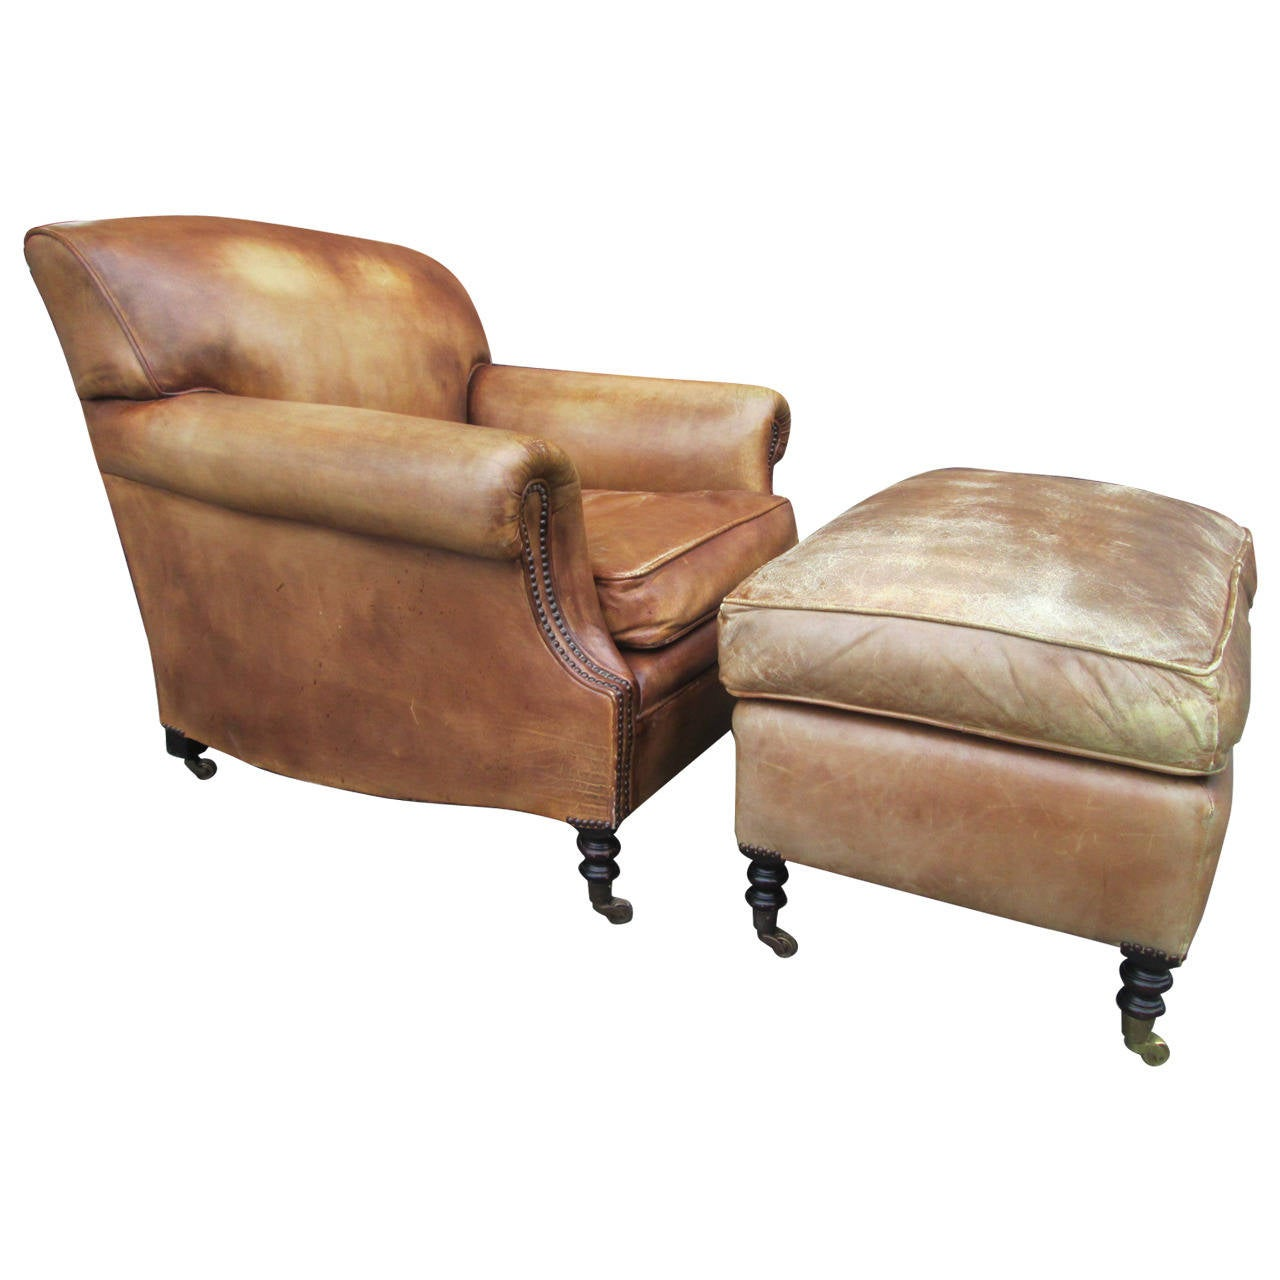 Leather Chairs And Ottomans Sale Leather Lounge Chair And Ottoman By George Smith